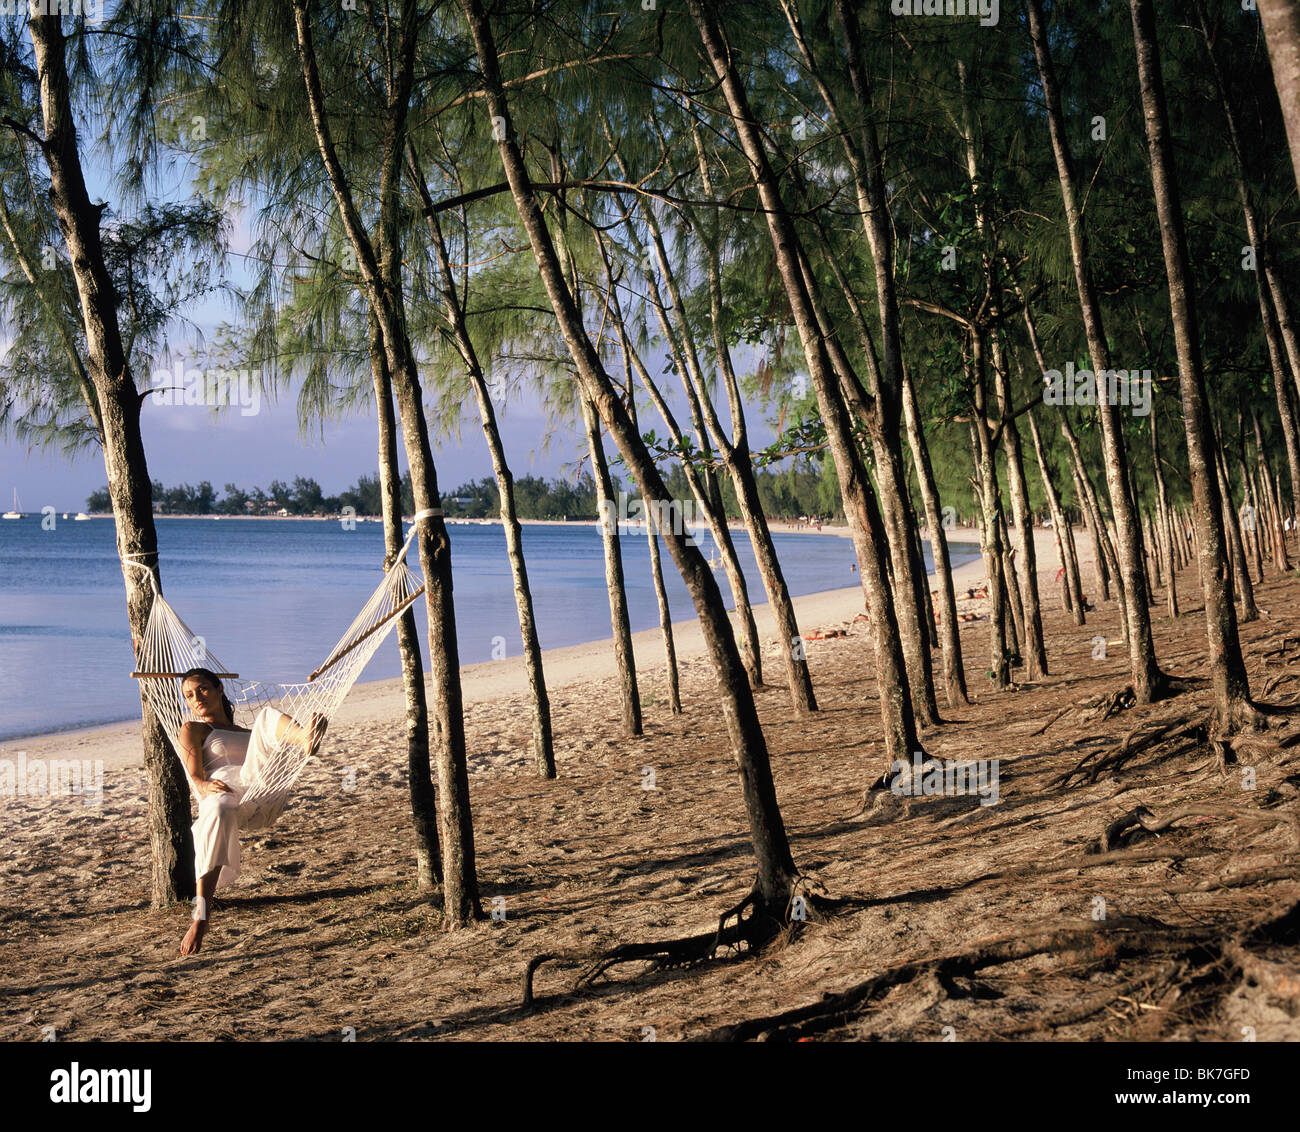 Beach near La Pointe Aux Canonniers in Mauritius, Indian Ocean, Africa - Stock Image